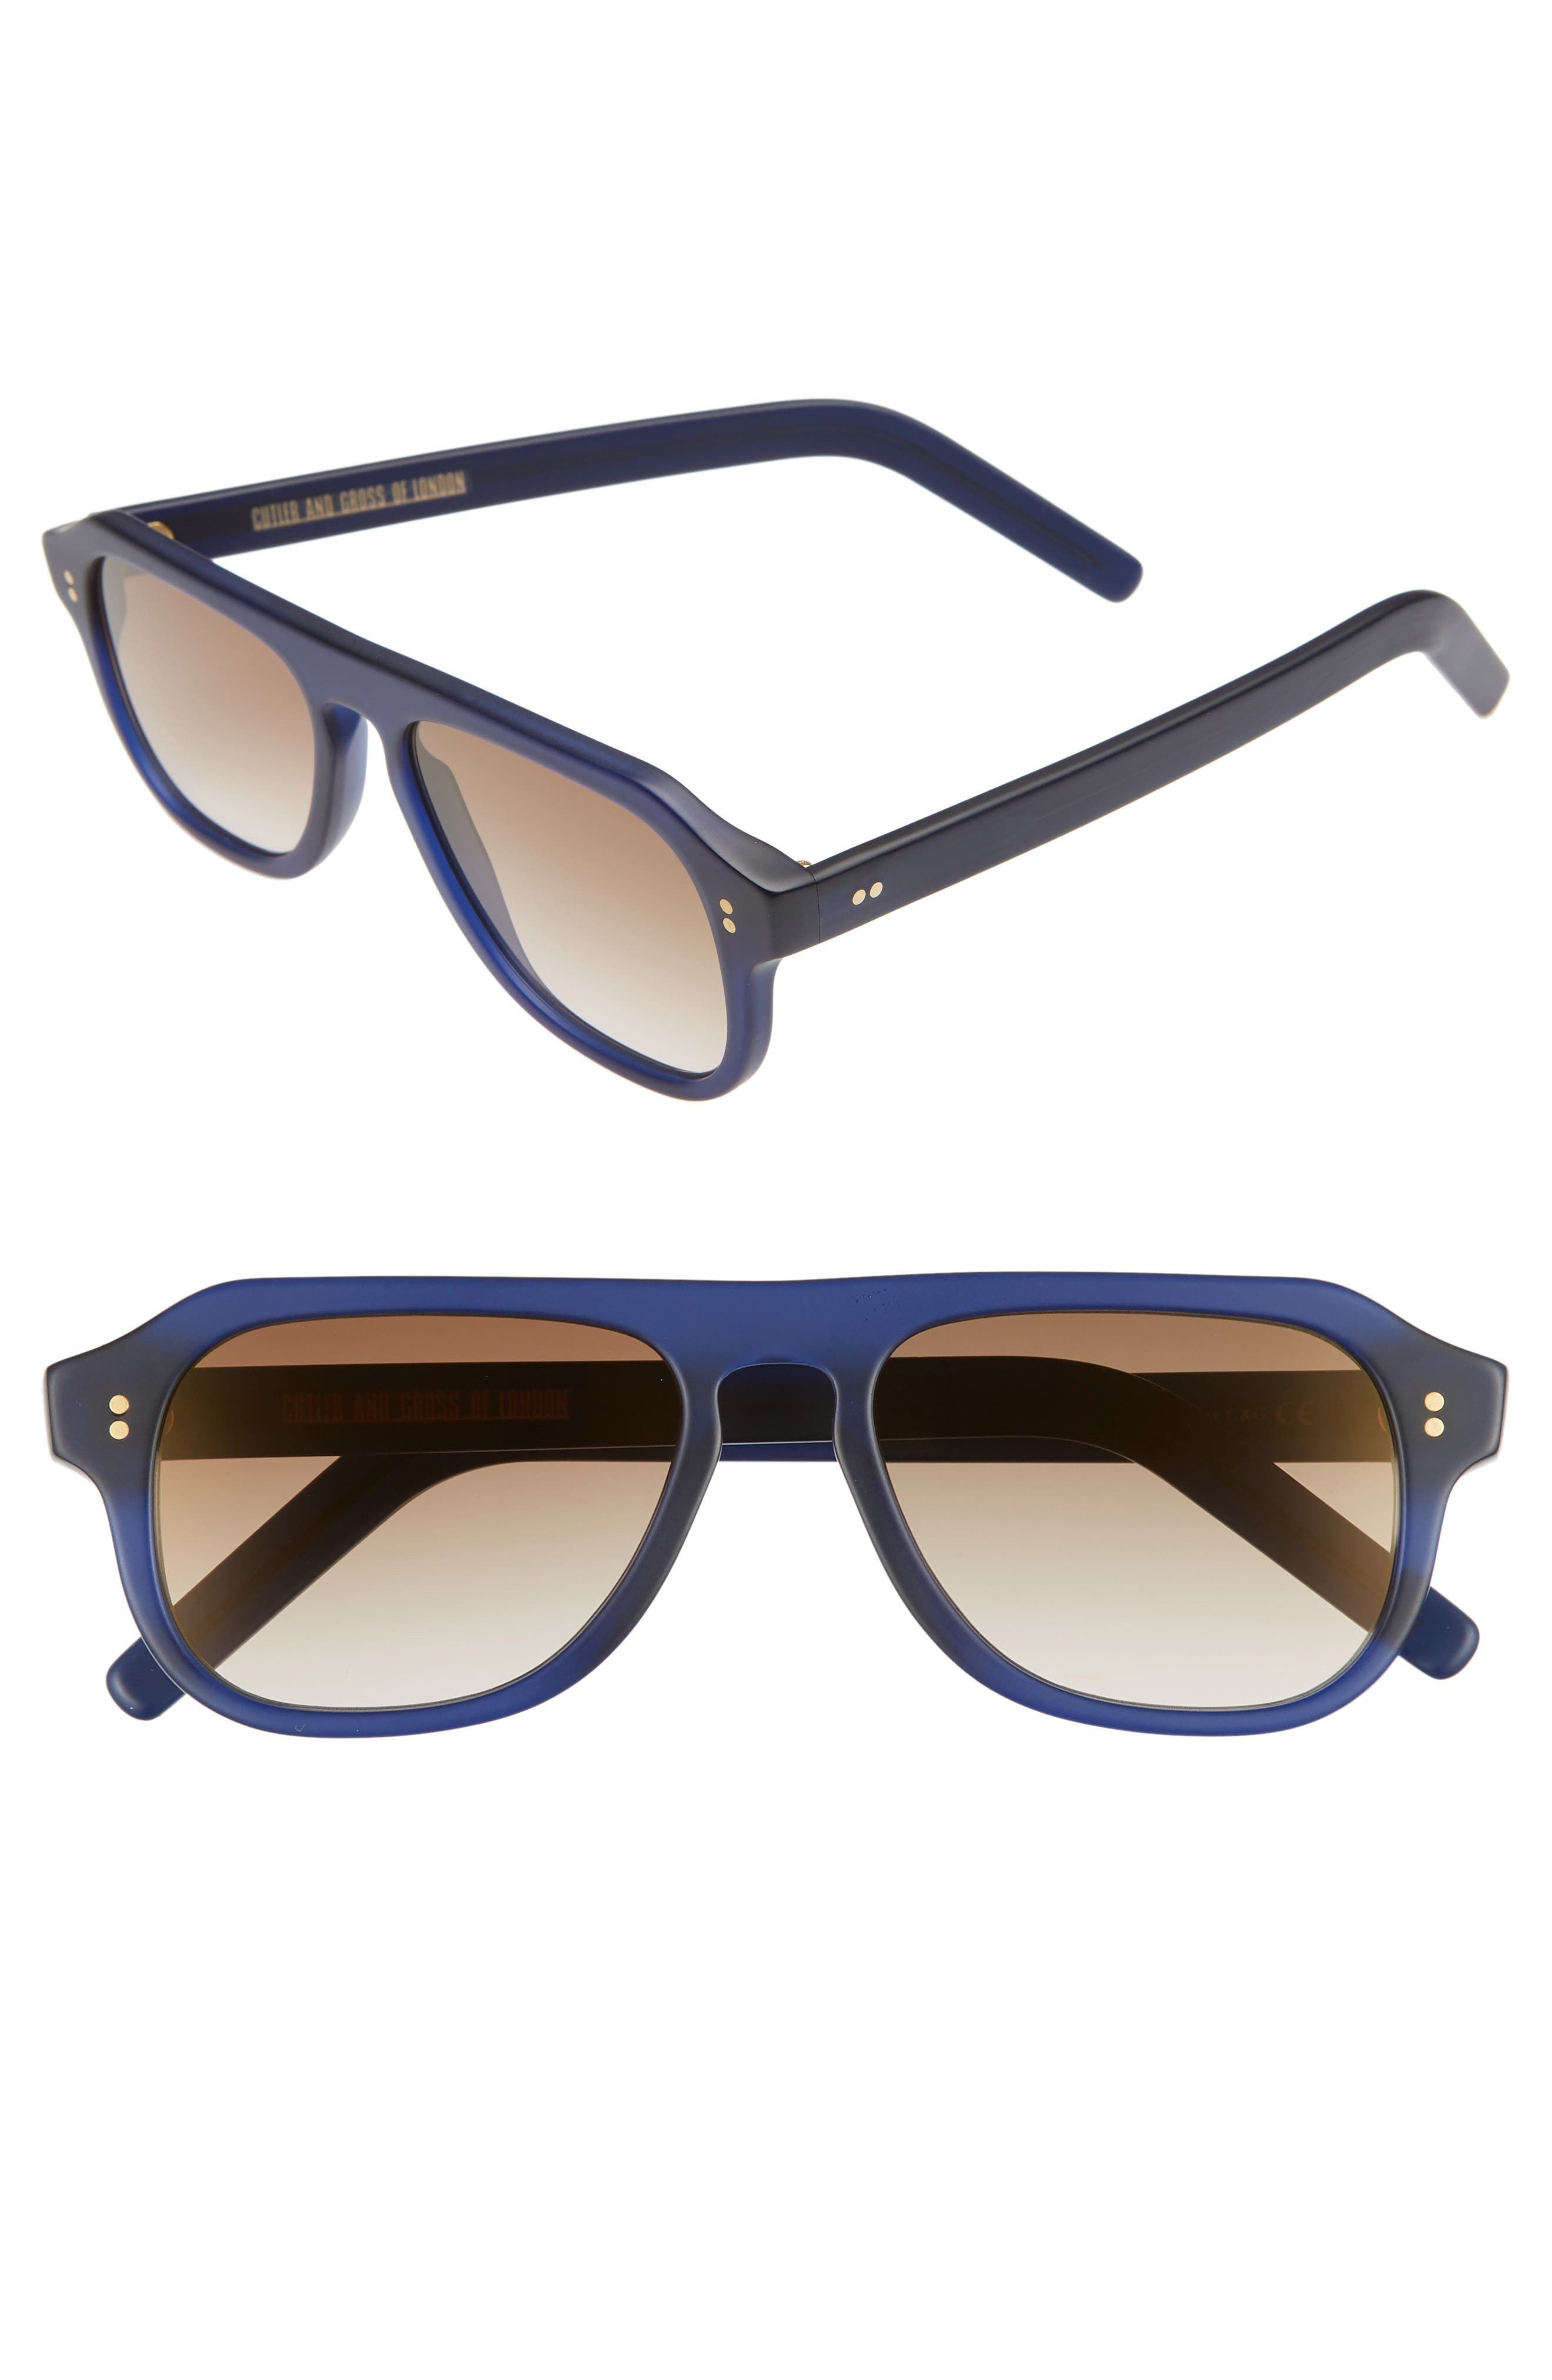 CUTLER AND GROSS 53MM POLARIZED SUNGLASSES - MATTE CLASSIC NAVY BLUE/ BROWN